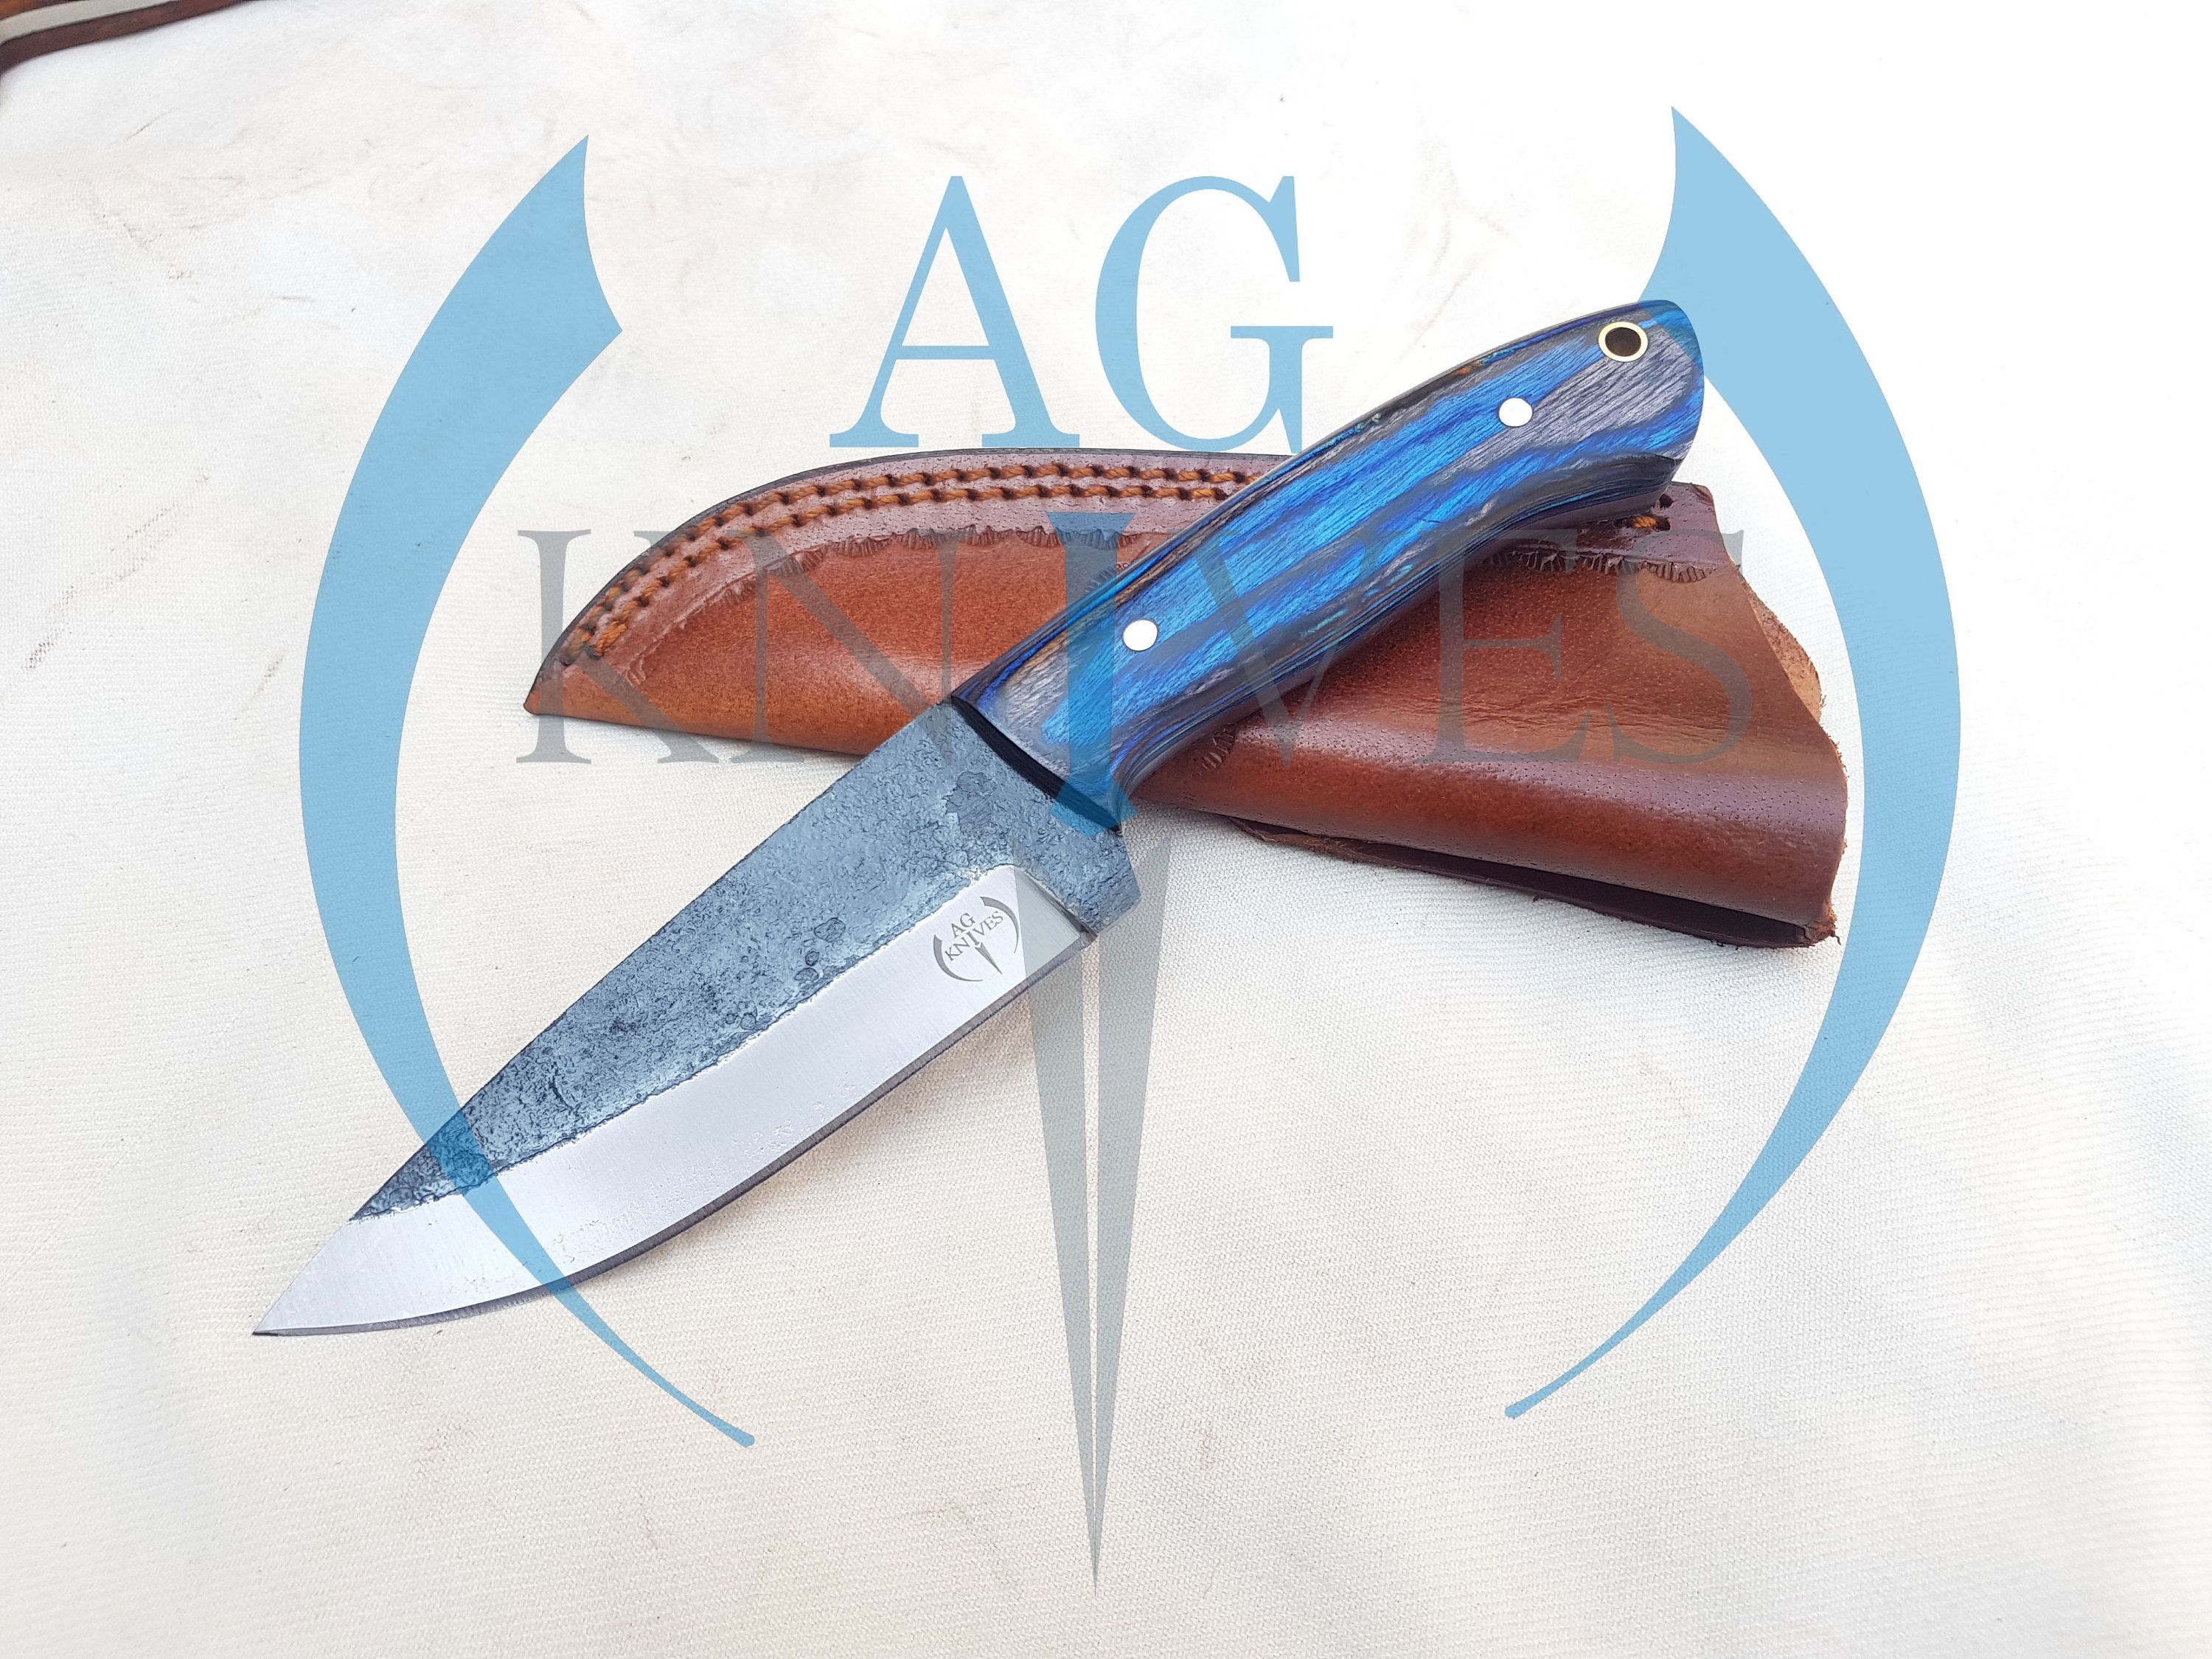 Handmade High Carbon Steel Hunting Skinner Knife With Color Sheet Handle In 2020 High Carbon Steel Carbon Steel Leather Sheath